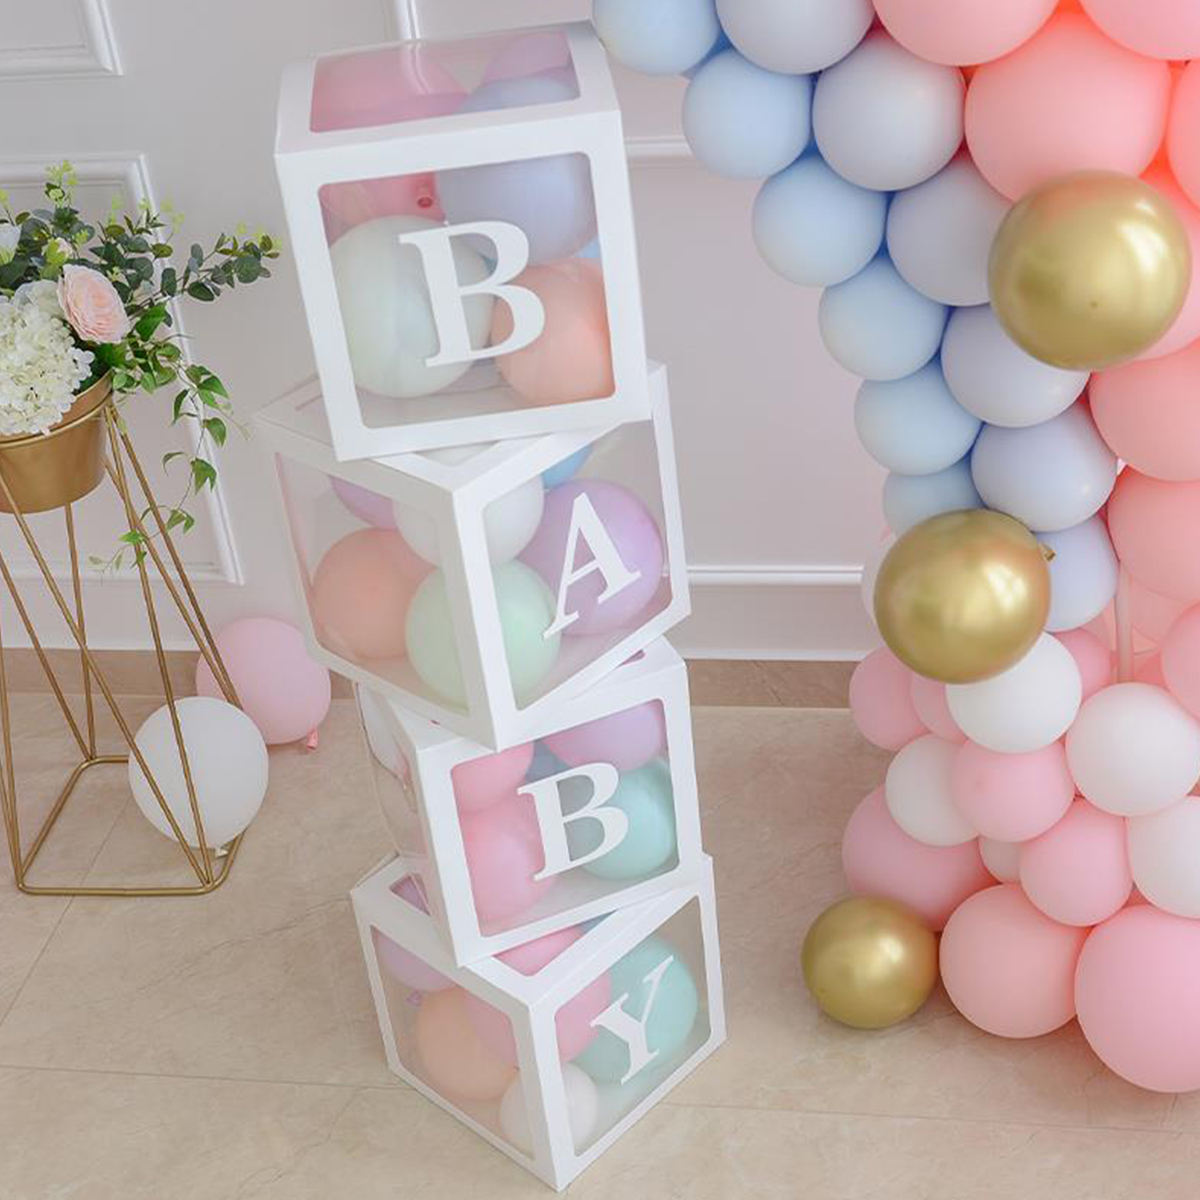 4PCS White Baby Shower Box Transparent Balloon set Gift gifts letter Boy Box For Baby Shower Decorations Birthday Party Supplies